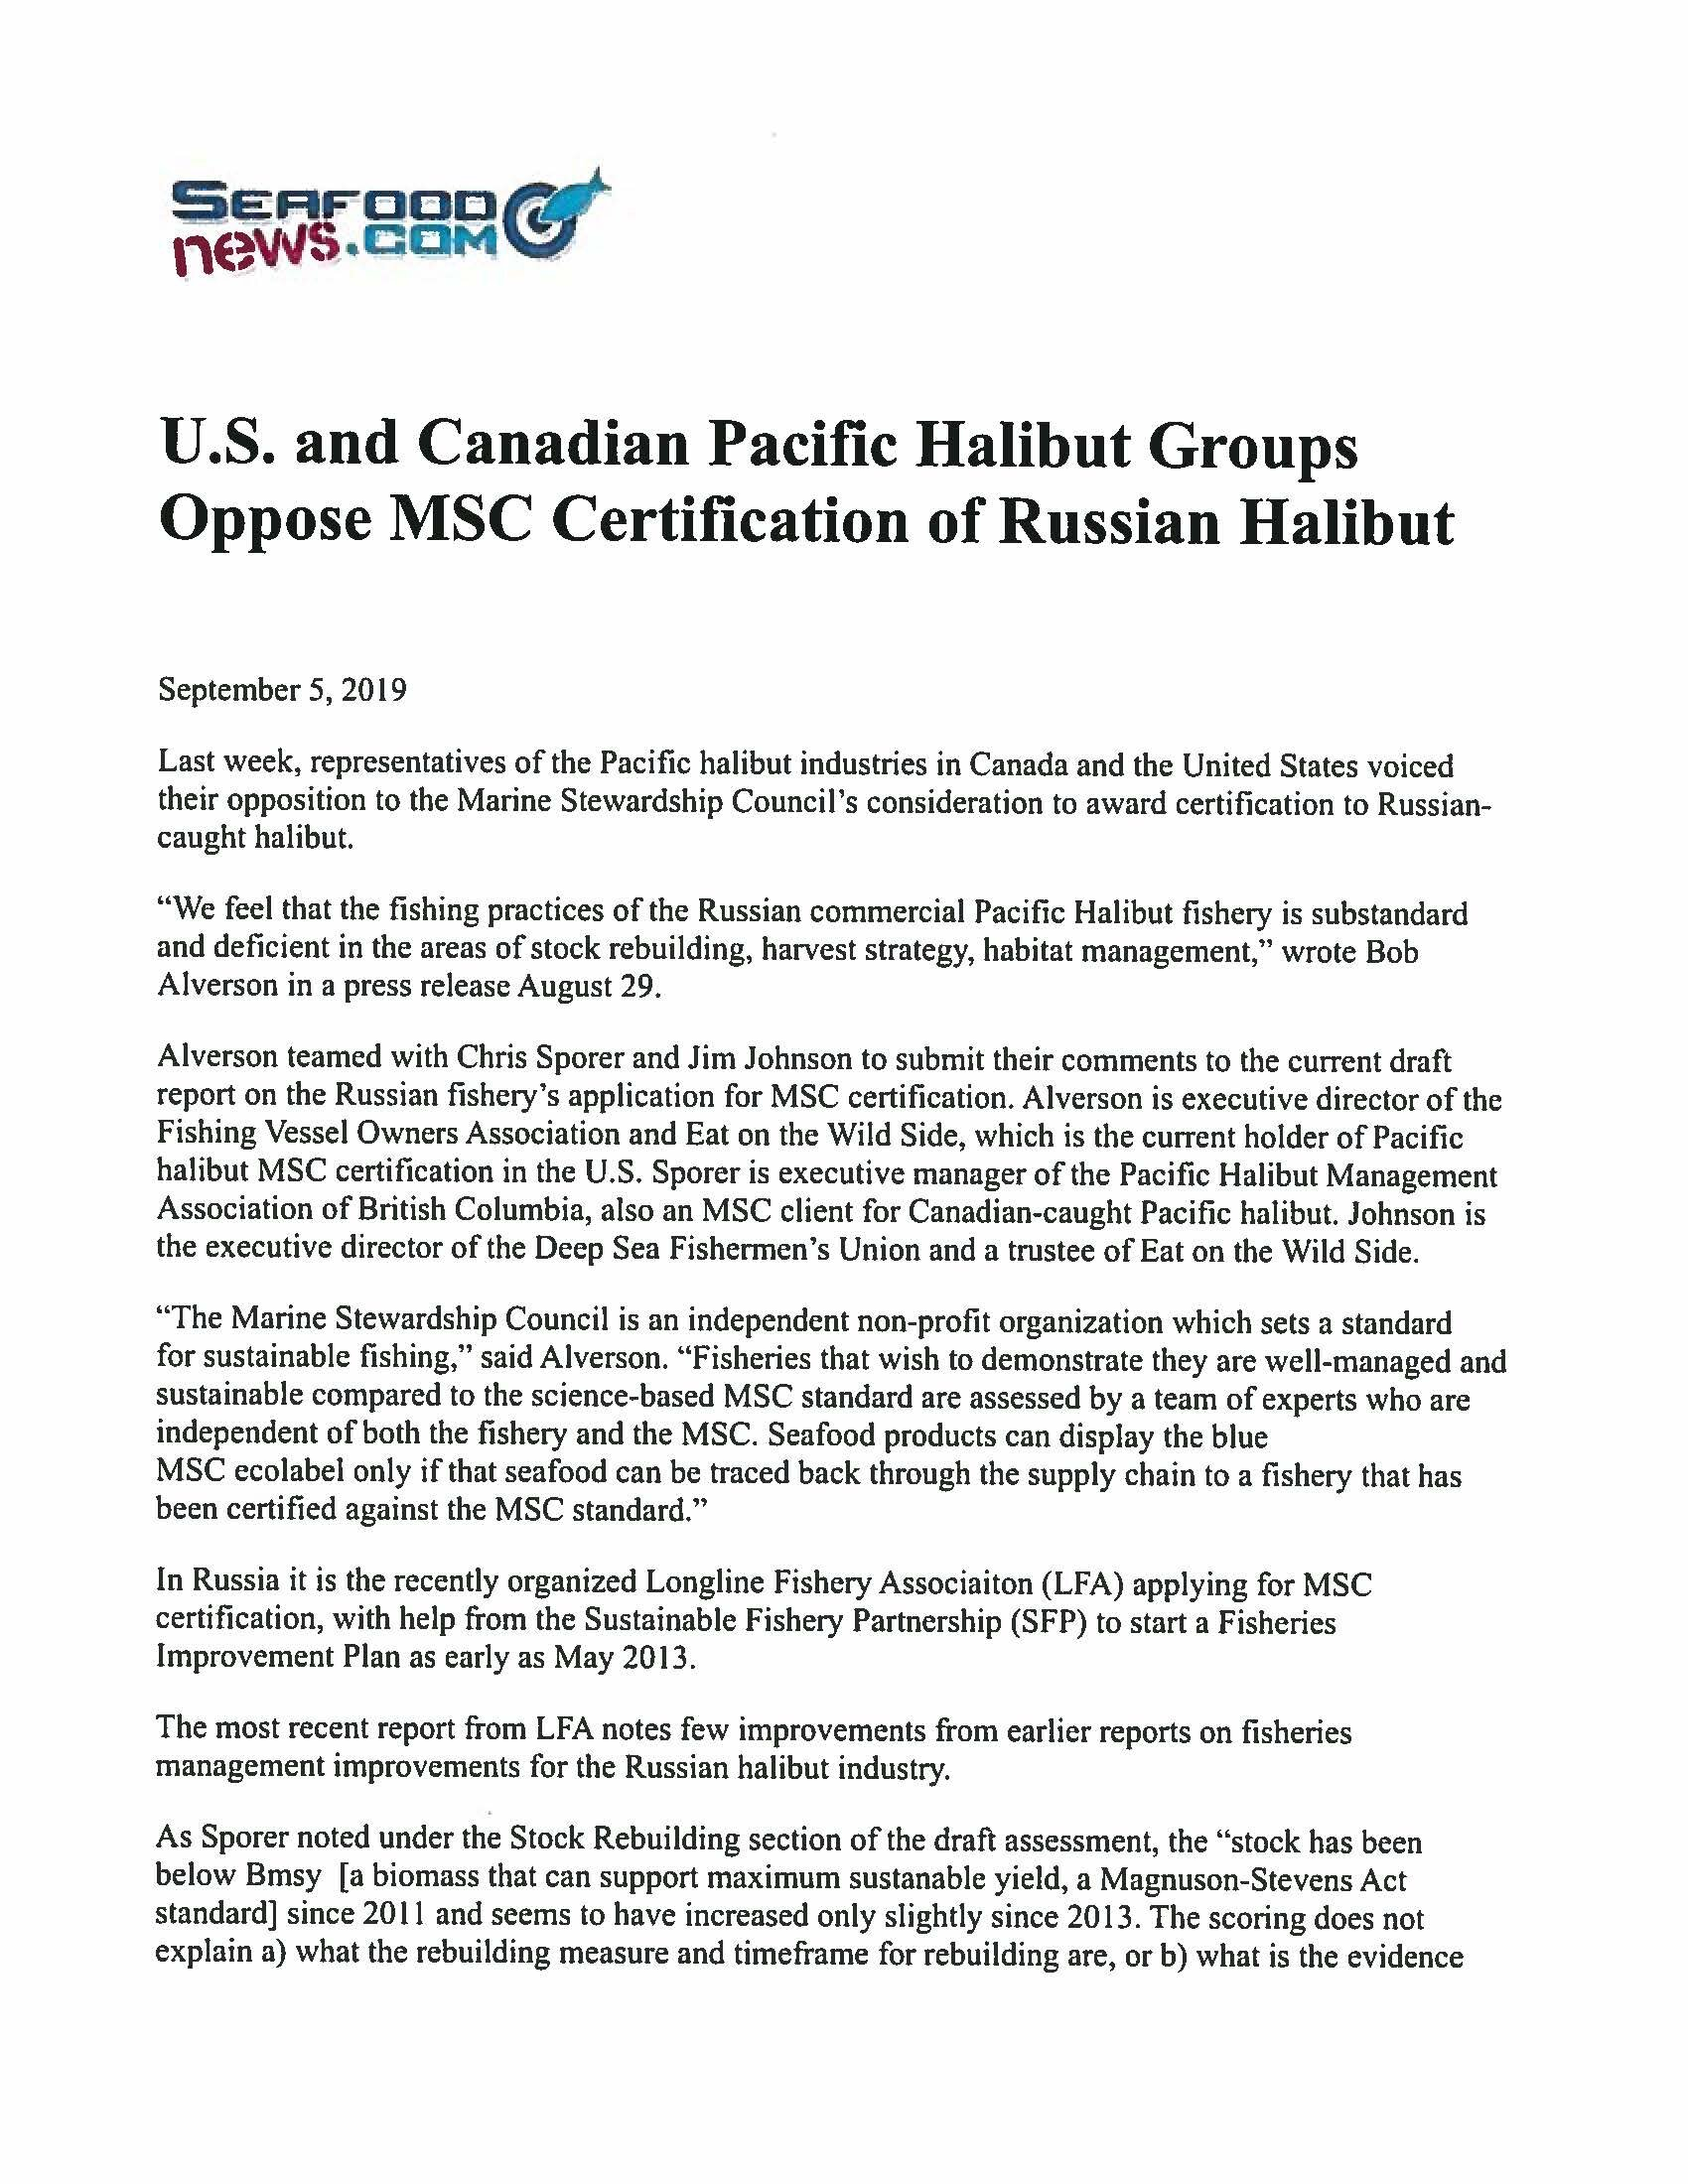 DOC_MSCCertification of Russion Halibut (1)_Page_1.jpg